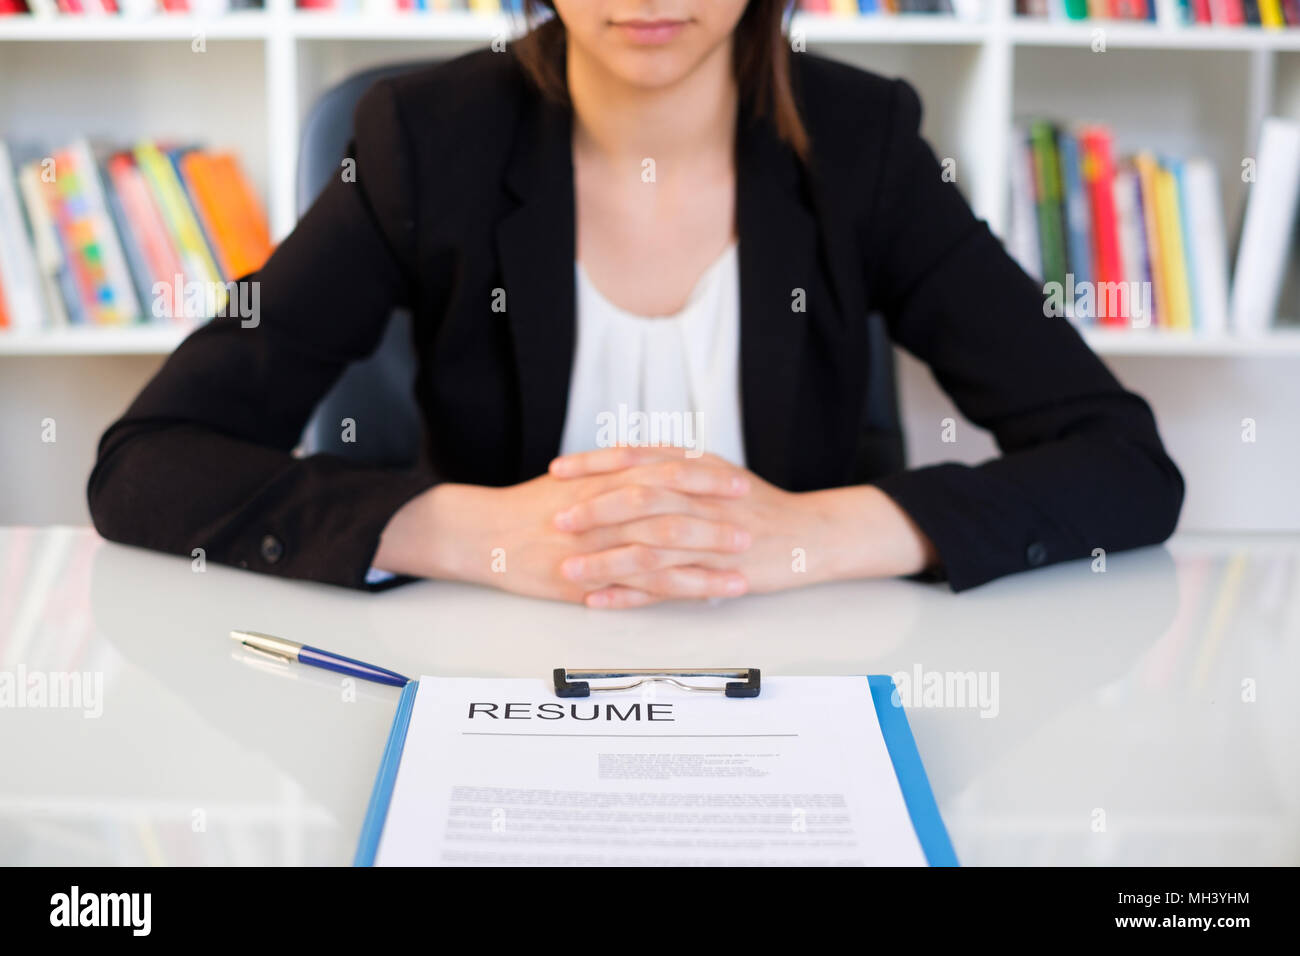 Young woman showing her cv resume and looking for a job - Stock Image